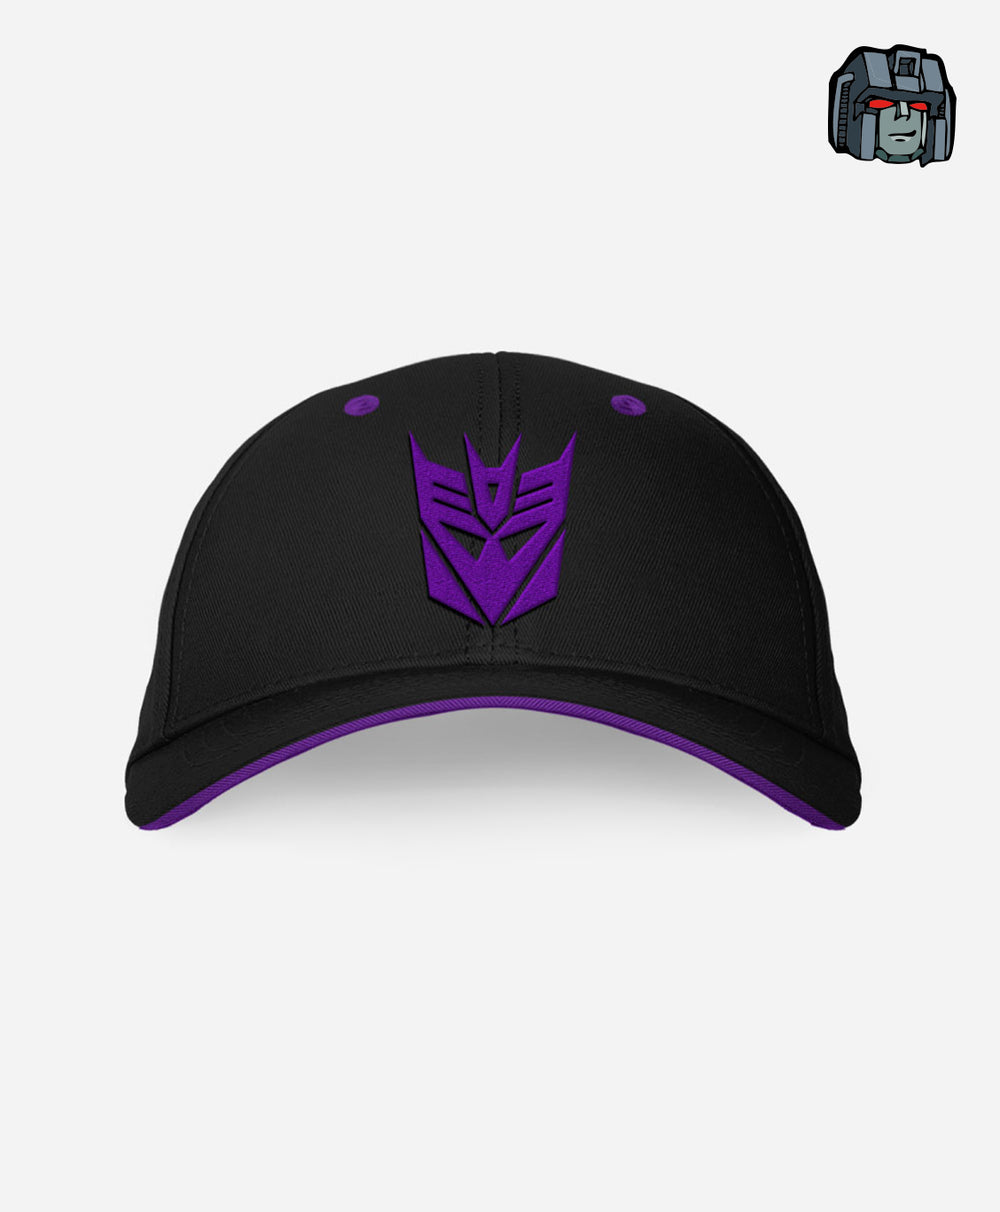 Transformers Starscream Cap